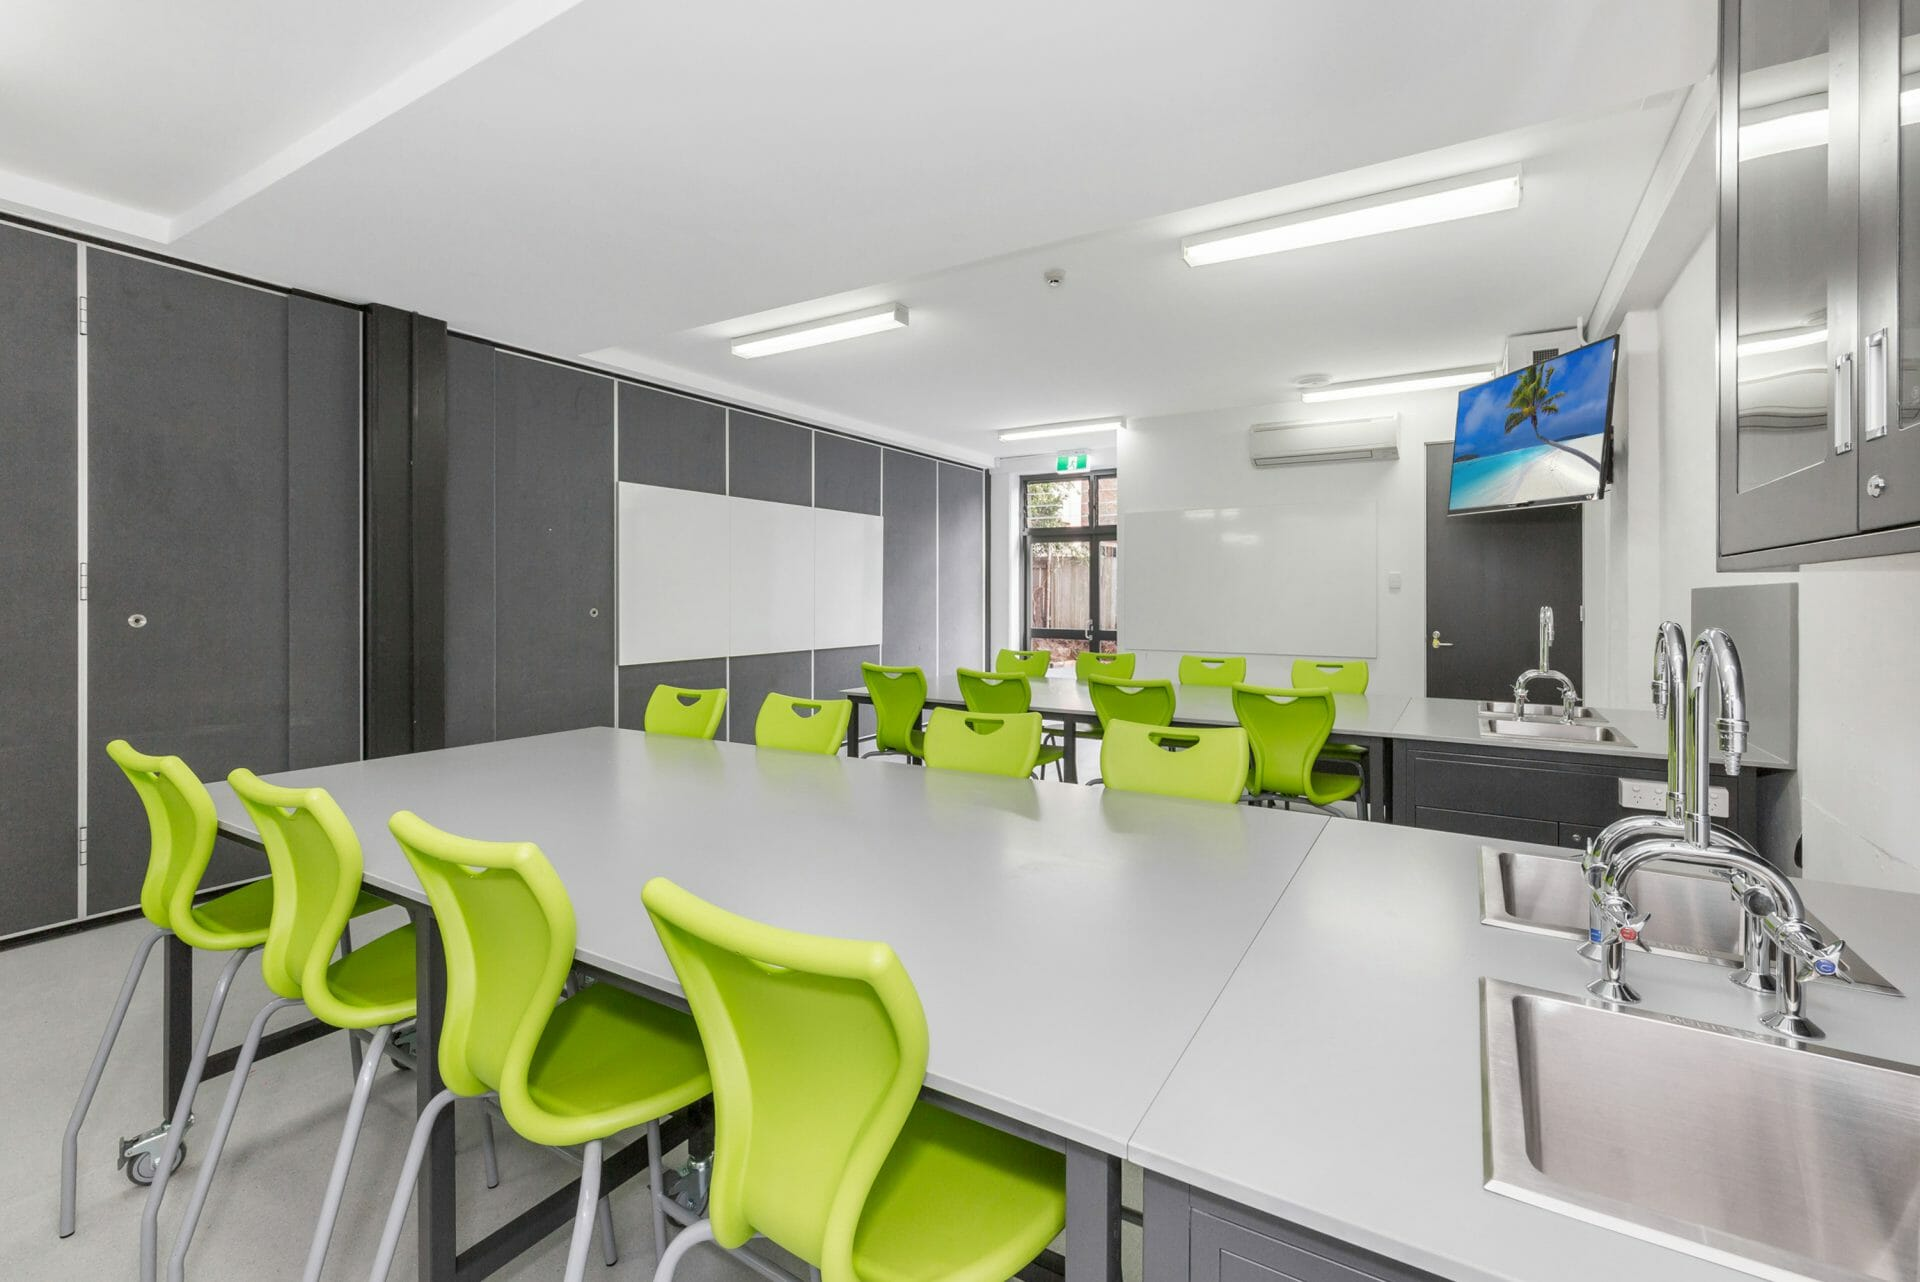 a fitout project for waverly action for youth services